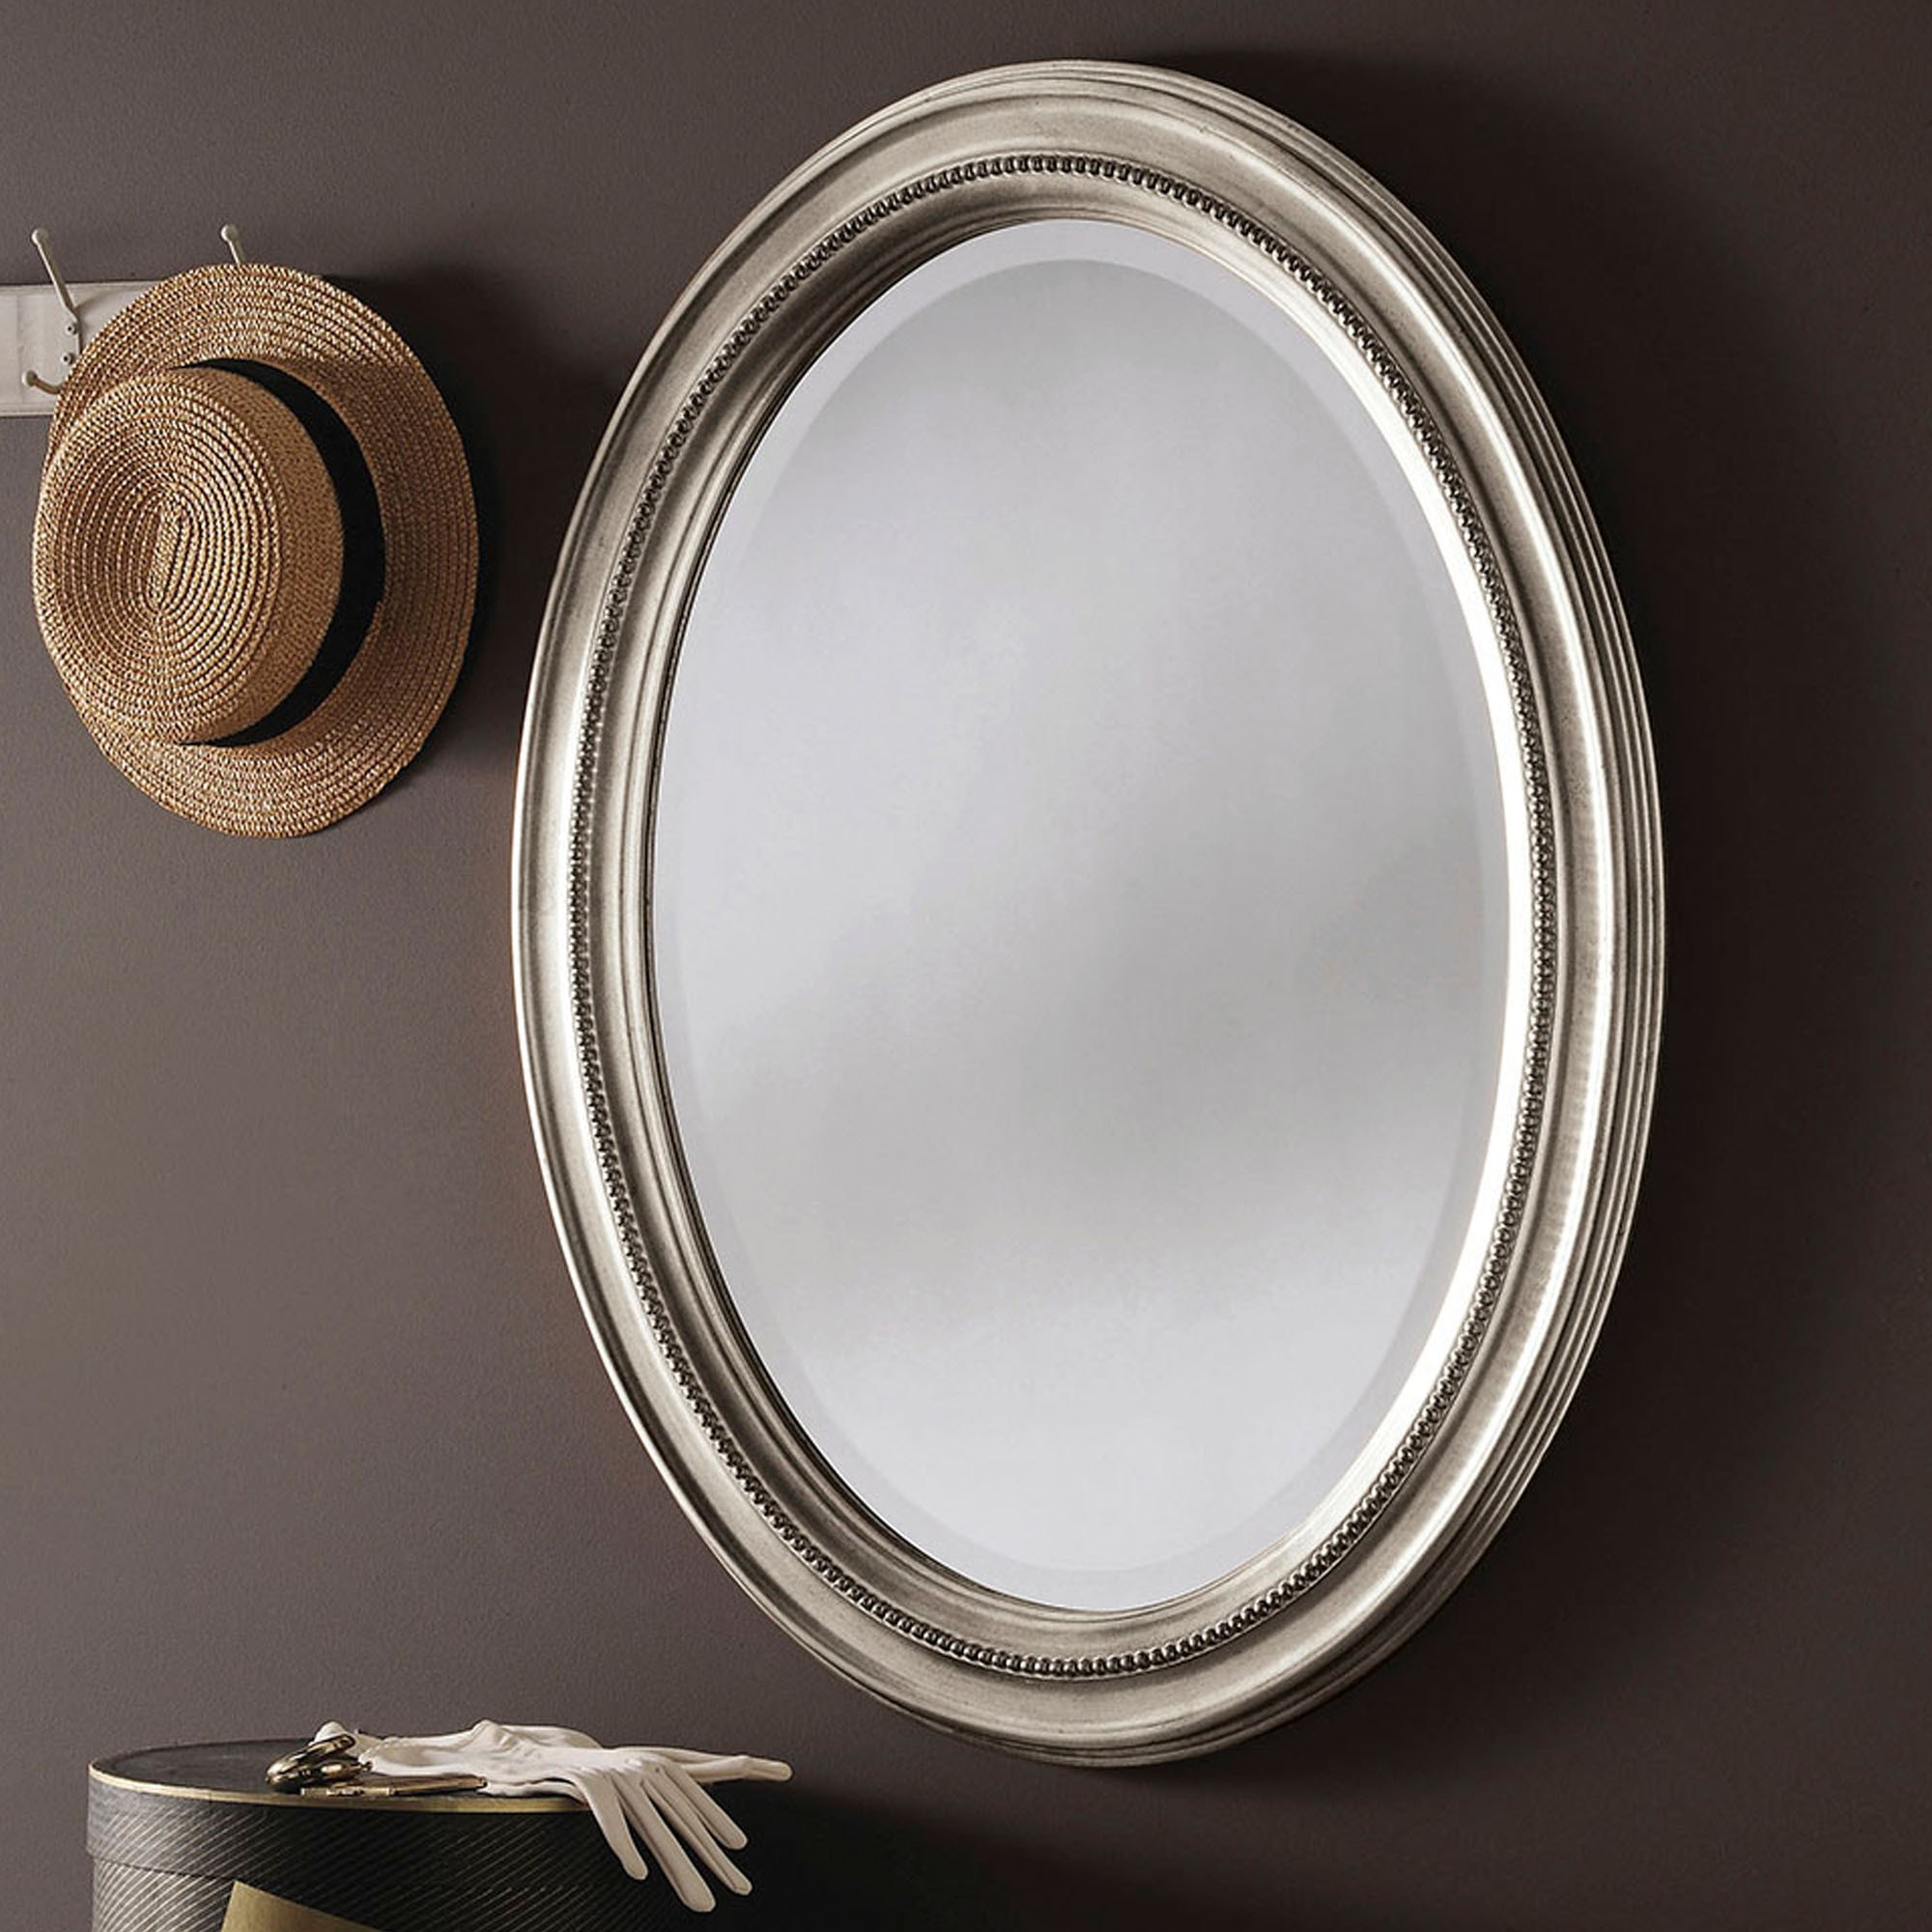 Decorative Silver Oval Wall Mirror In Popular Silver Oval Wall Mirrors (View 6 of 20)